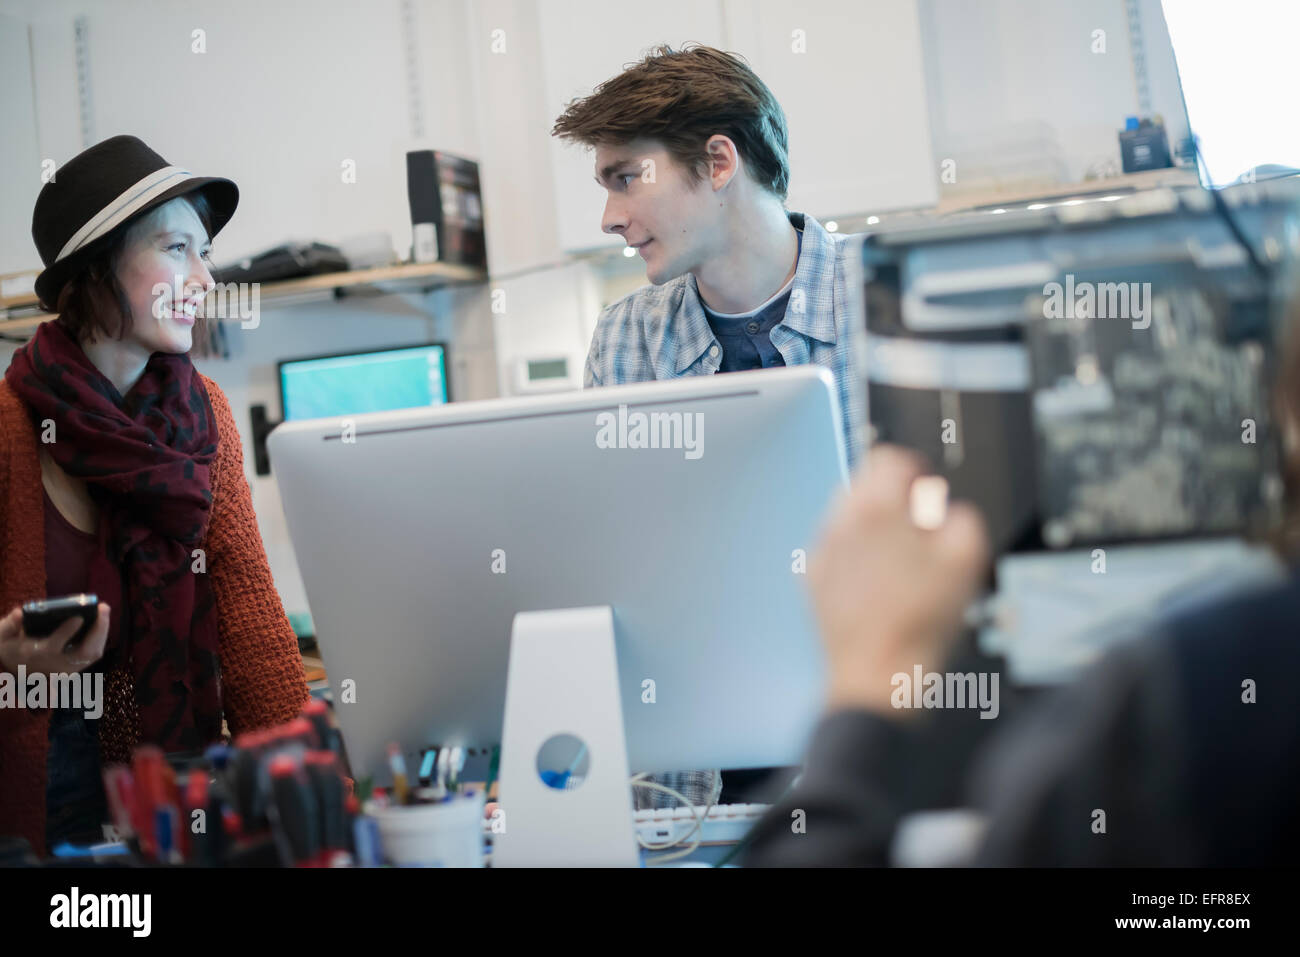 Computer Repair Shop. A man and woman talking over a computer. - Stock Image